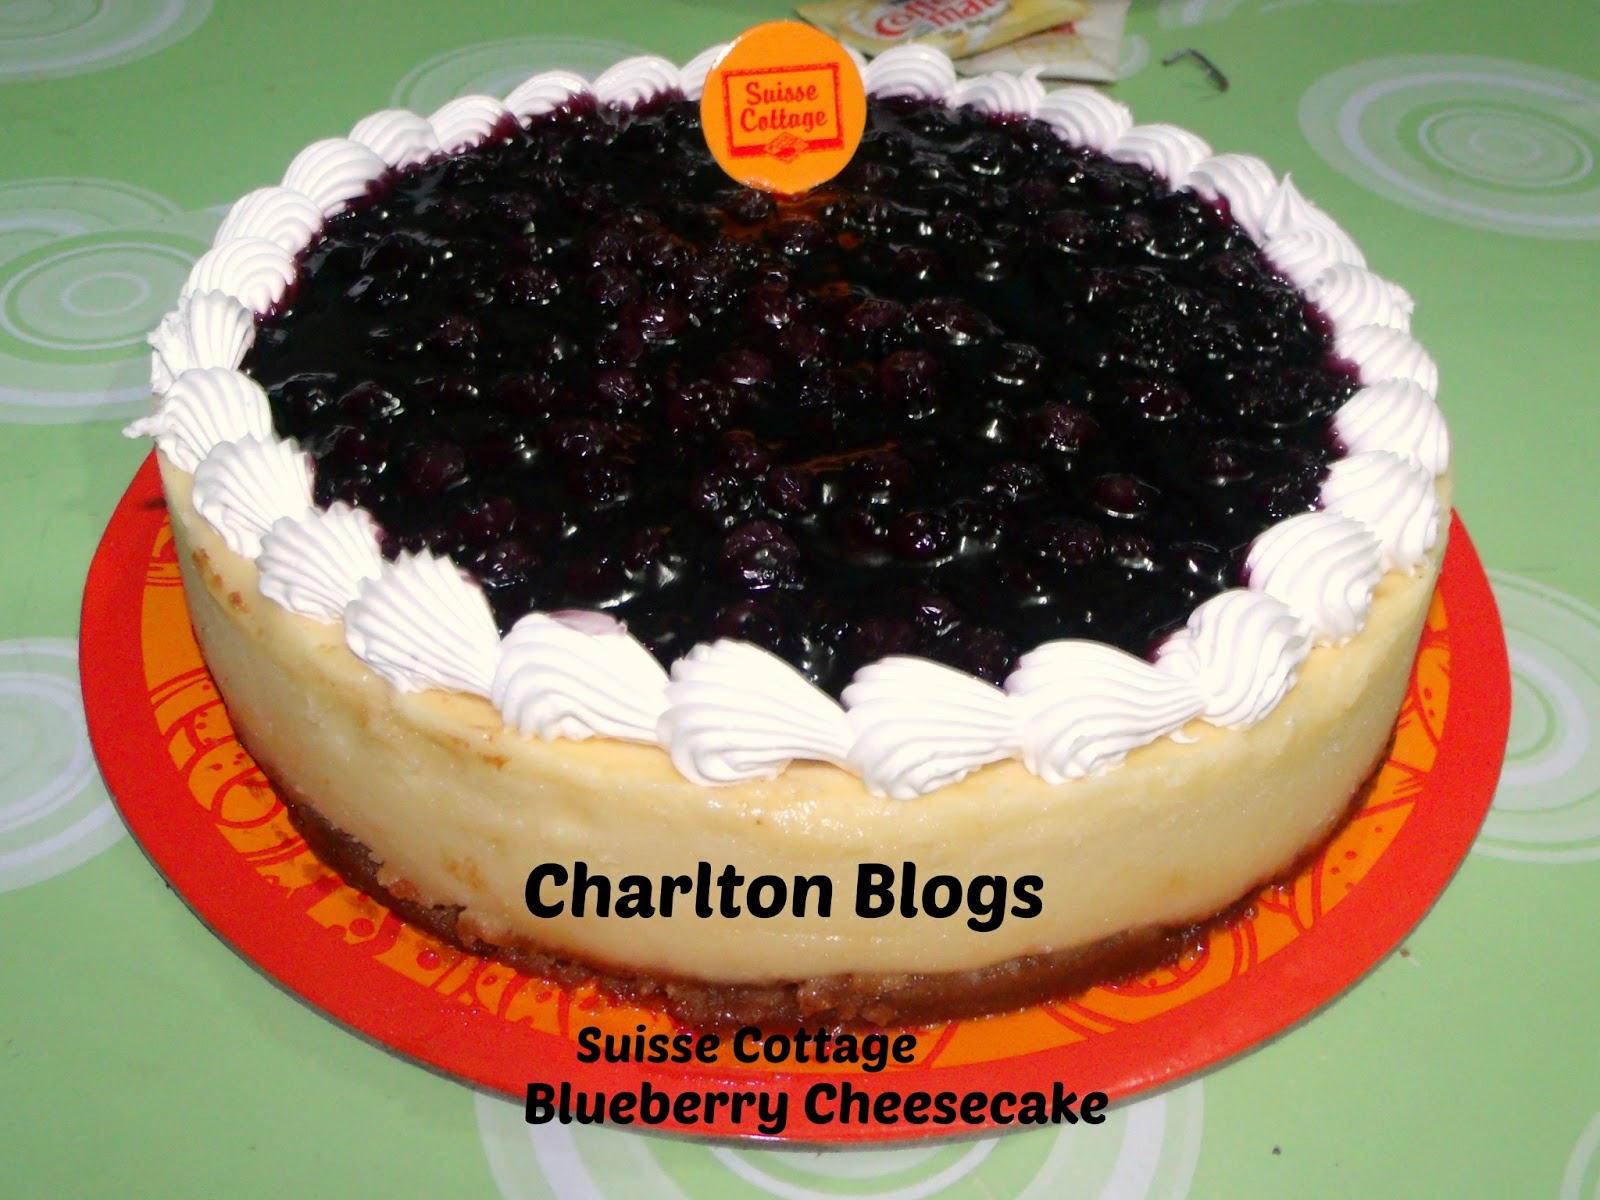 ... EXPERIENCE: 7 Gifts for my 30th - First is Blueberry Cheesecake